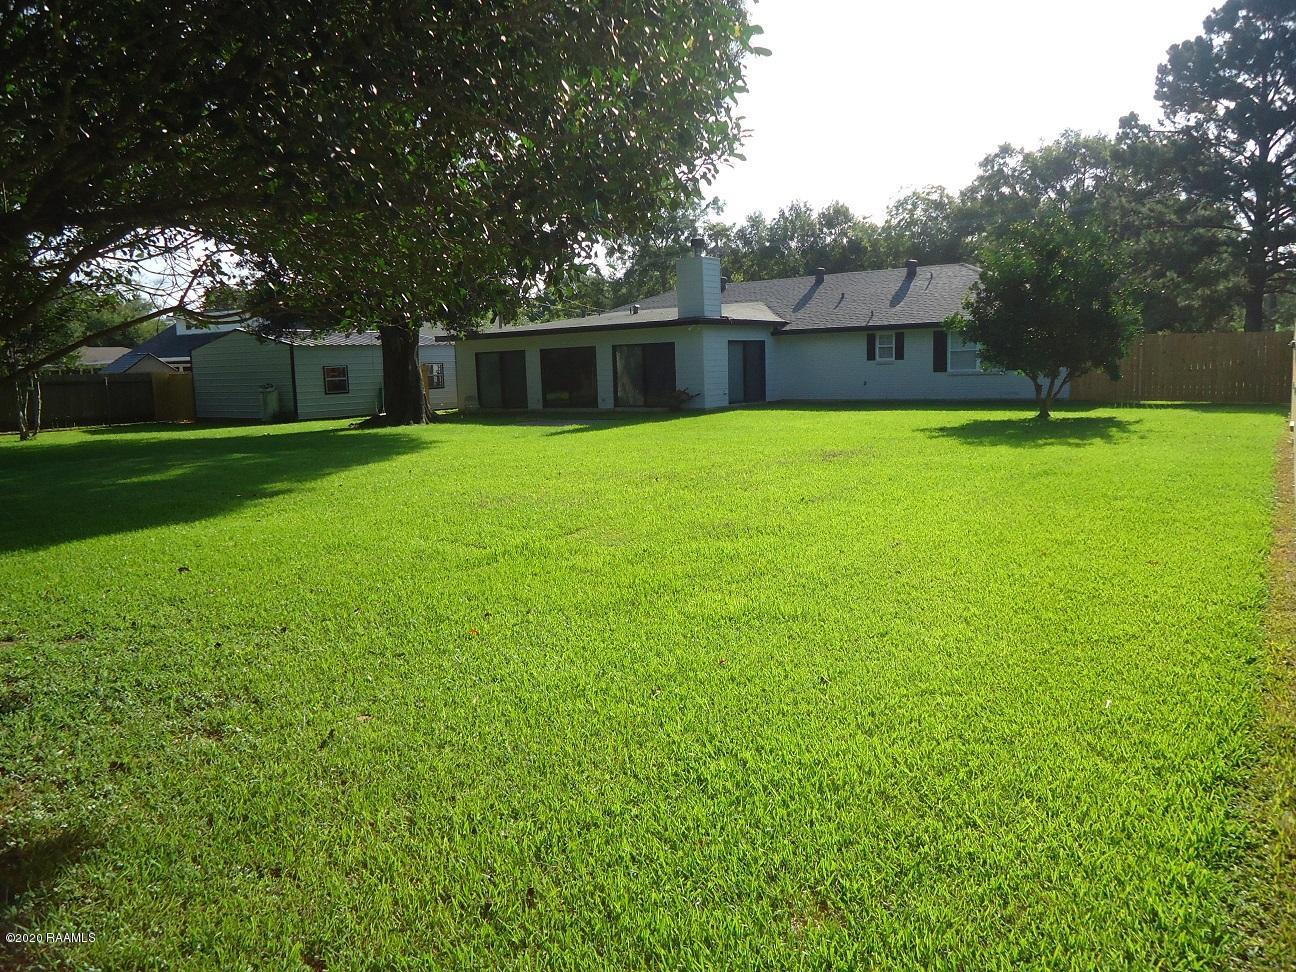 220 Larriviere Road, Youngsville, LA 70592 Photo #31